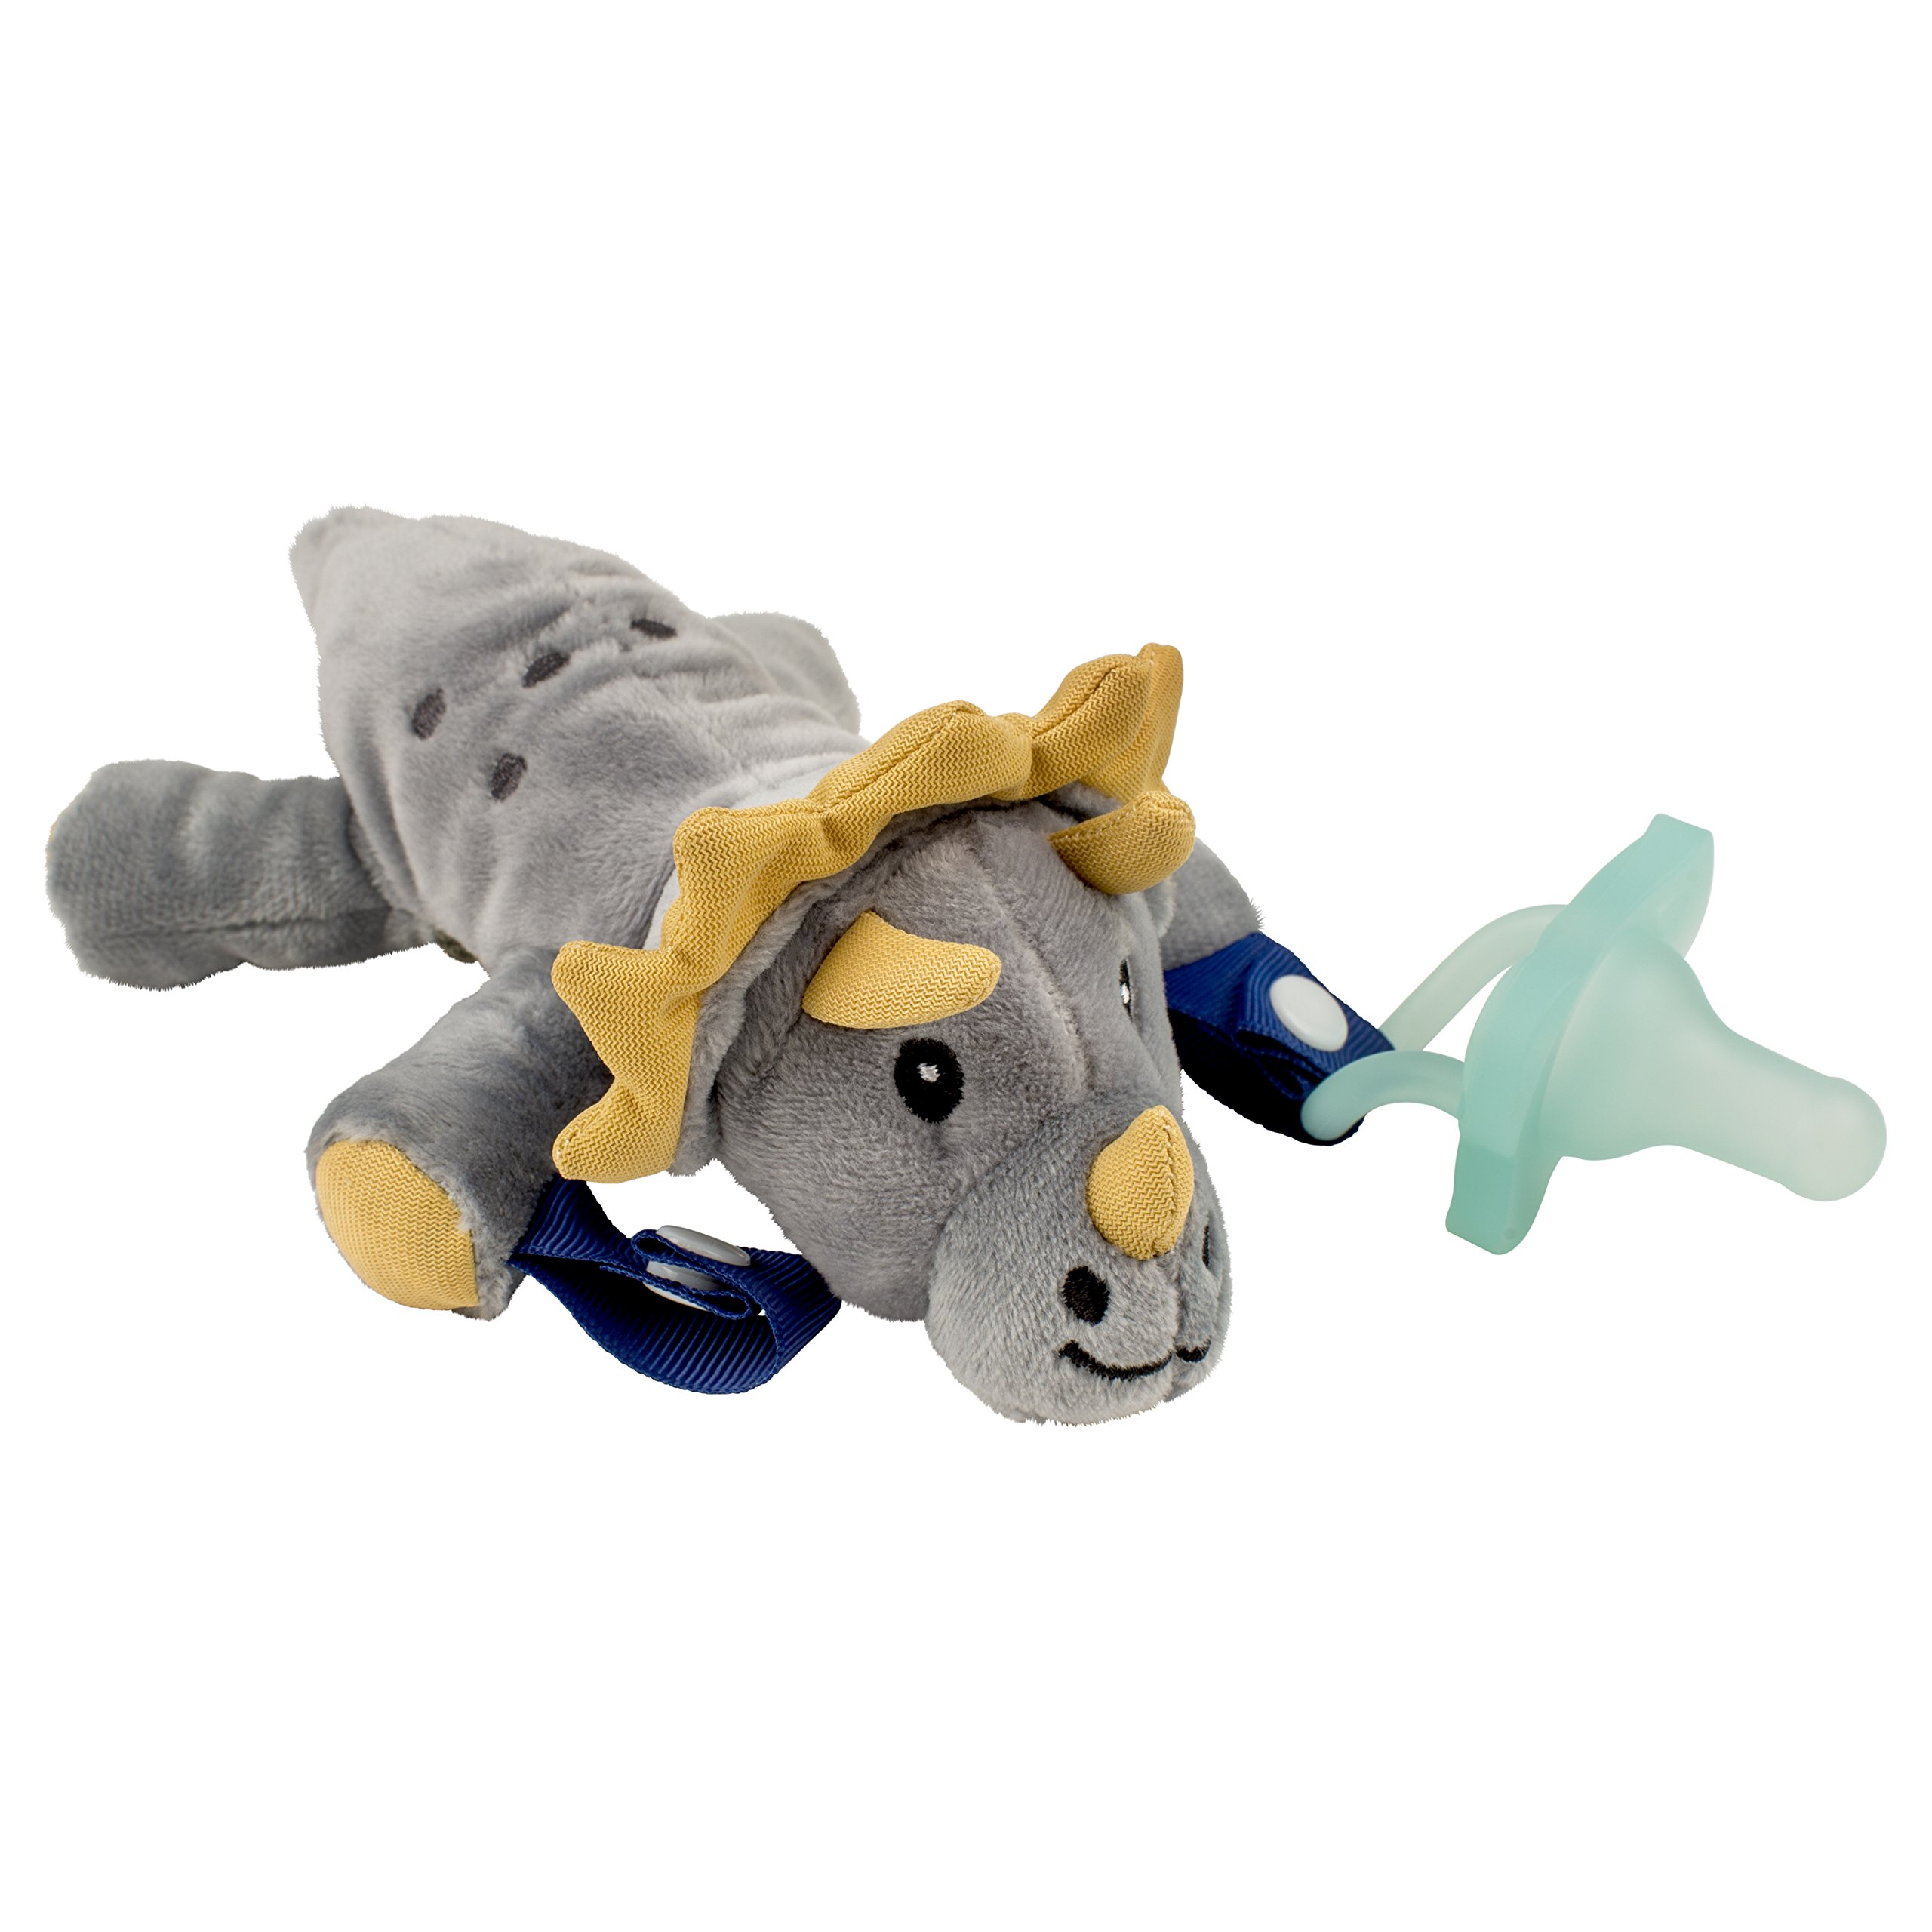 Dr. Browns Lovey Pacifier and Teether Holder, Triceratops with Teal, 0 Months+